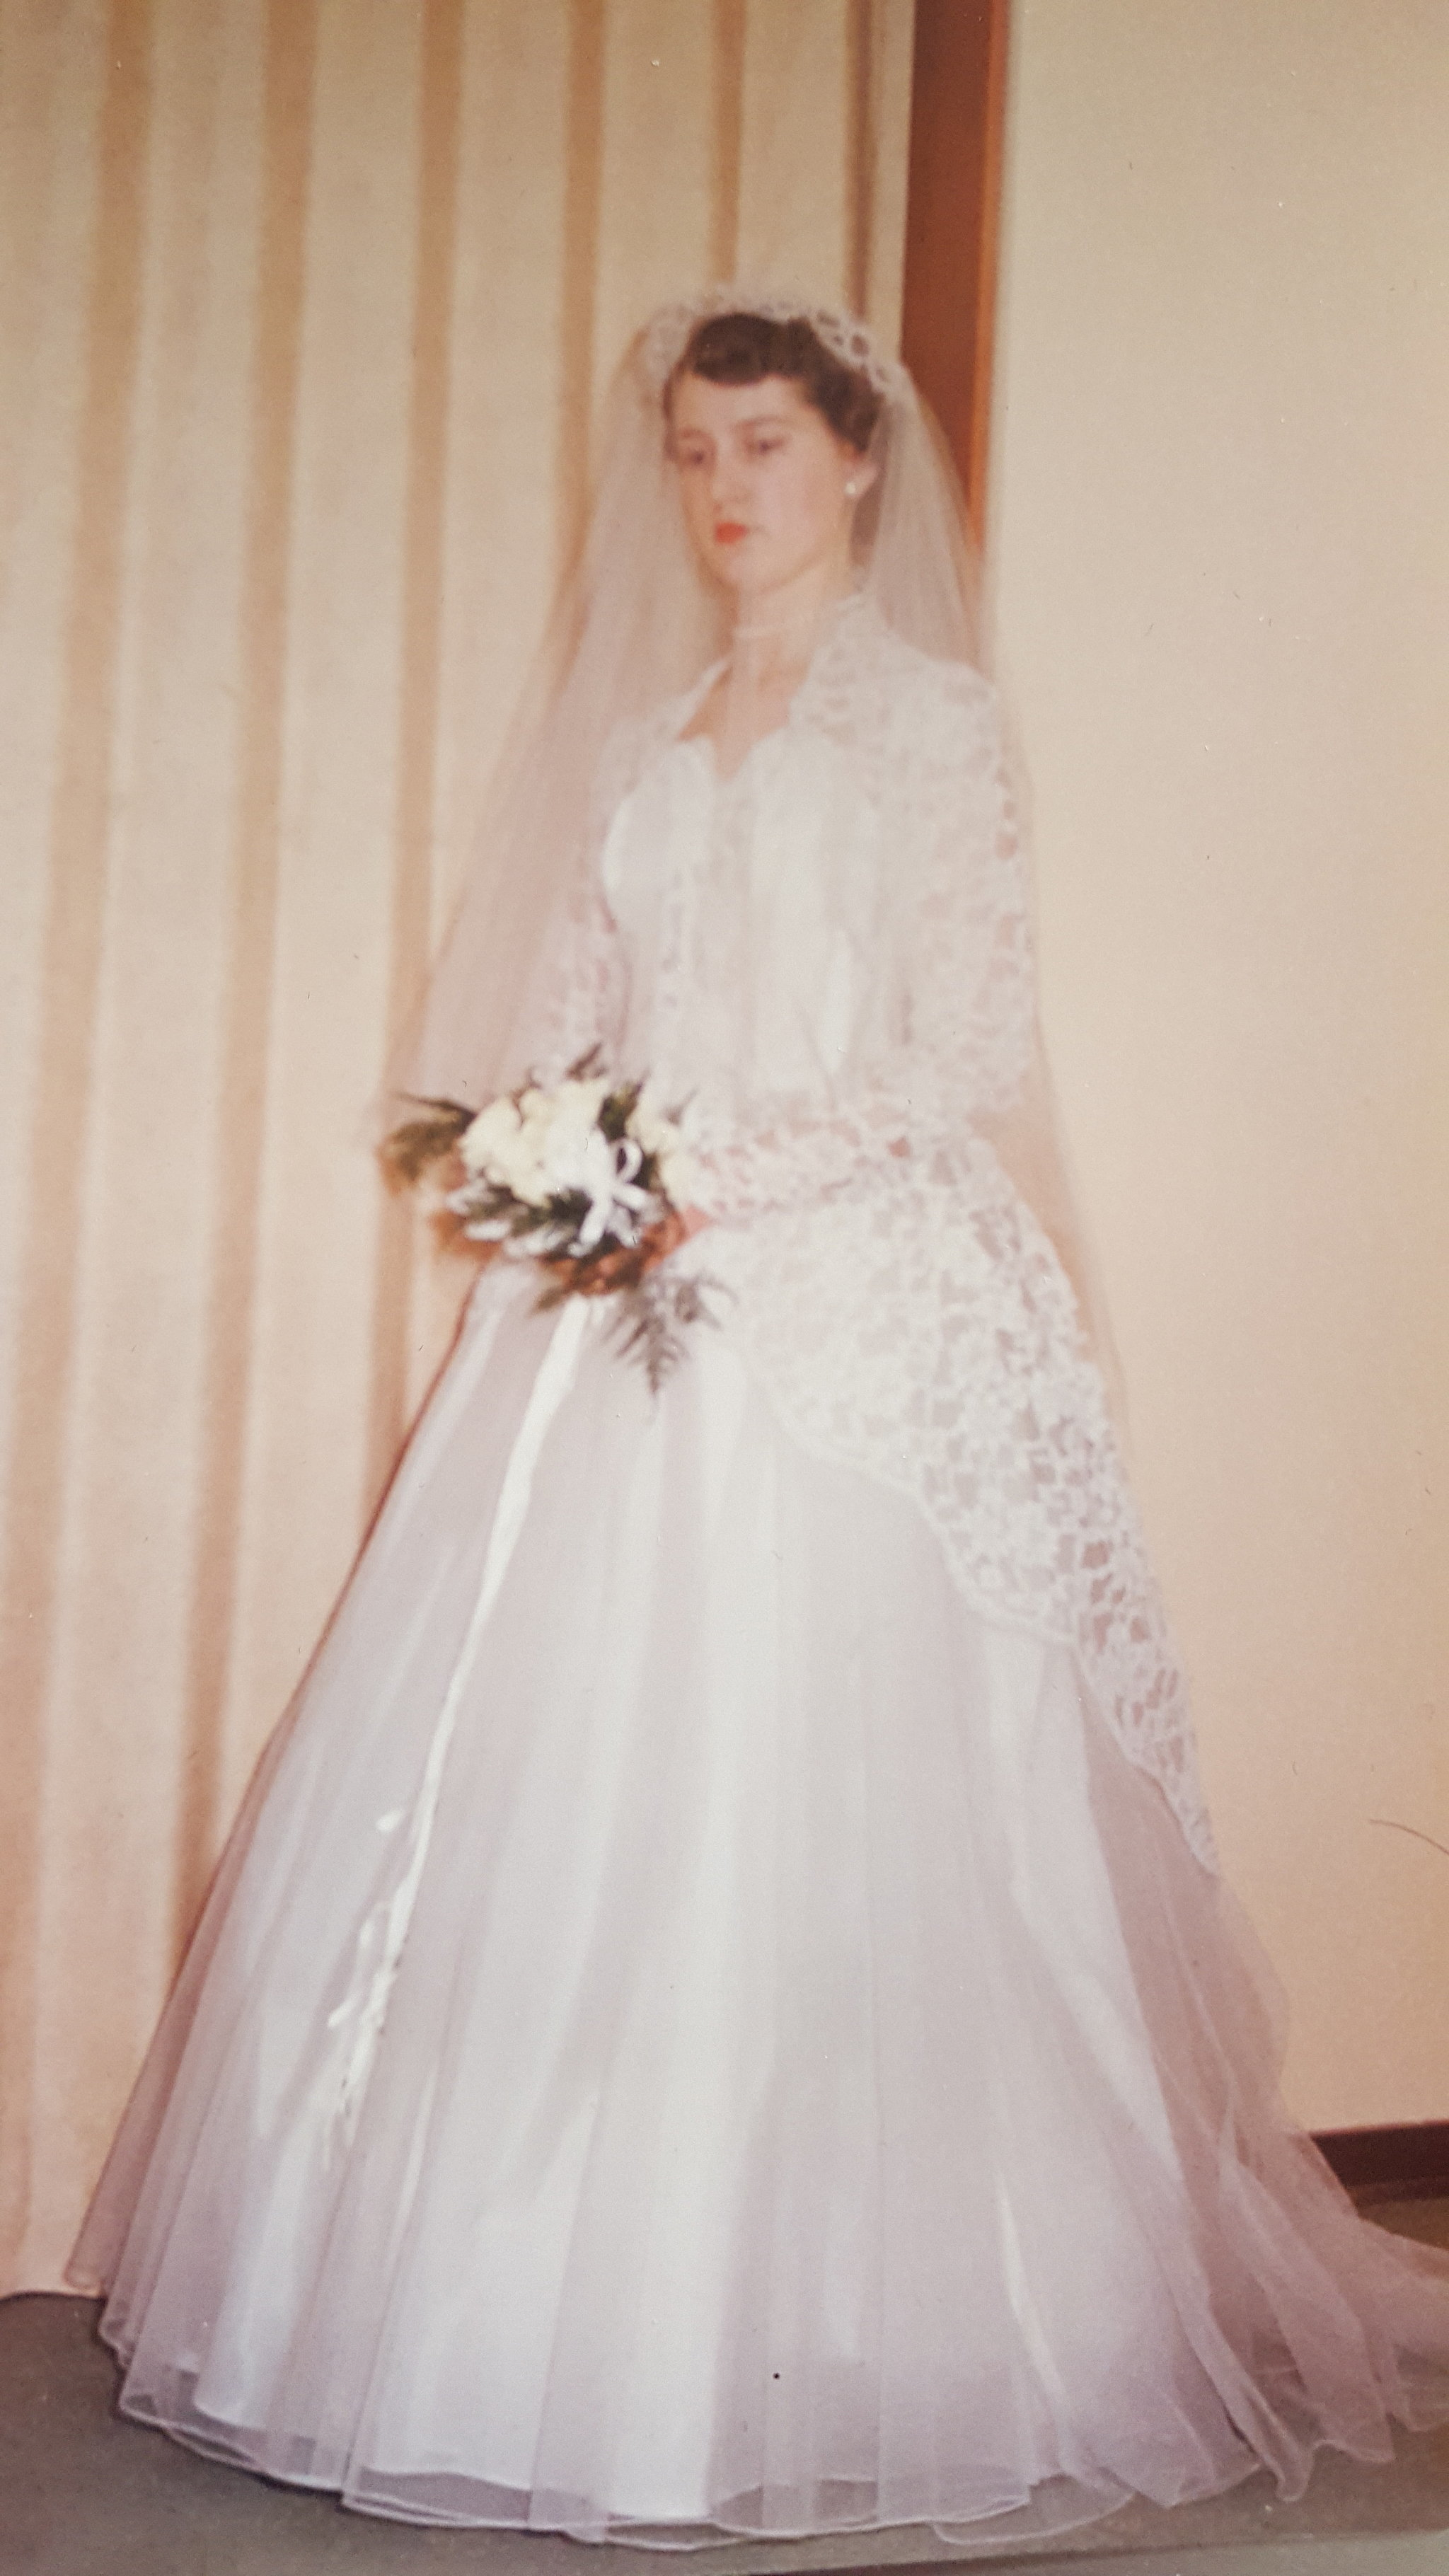 Wedding Dresses For Grandma : Grandmother phyllis in the dress this bride wore same wedding